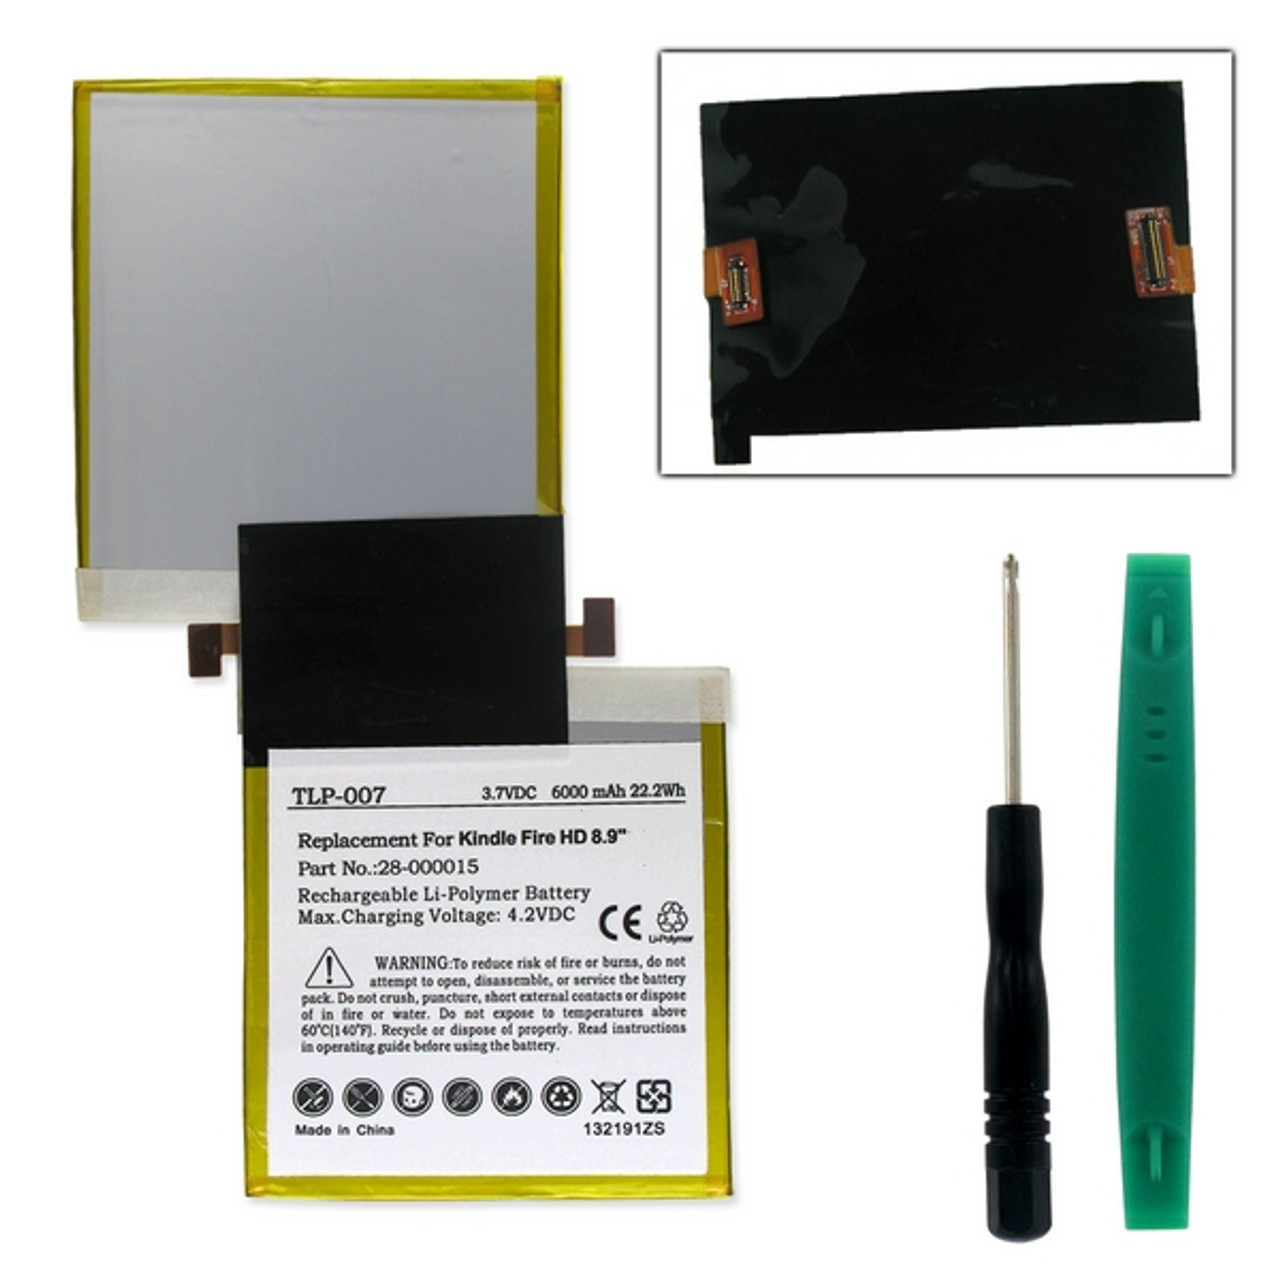 AMAZON KINDLE FIRE HD 40.40 40G Tablet Battery BB 20401402